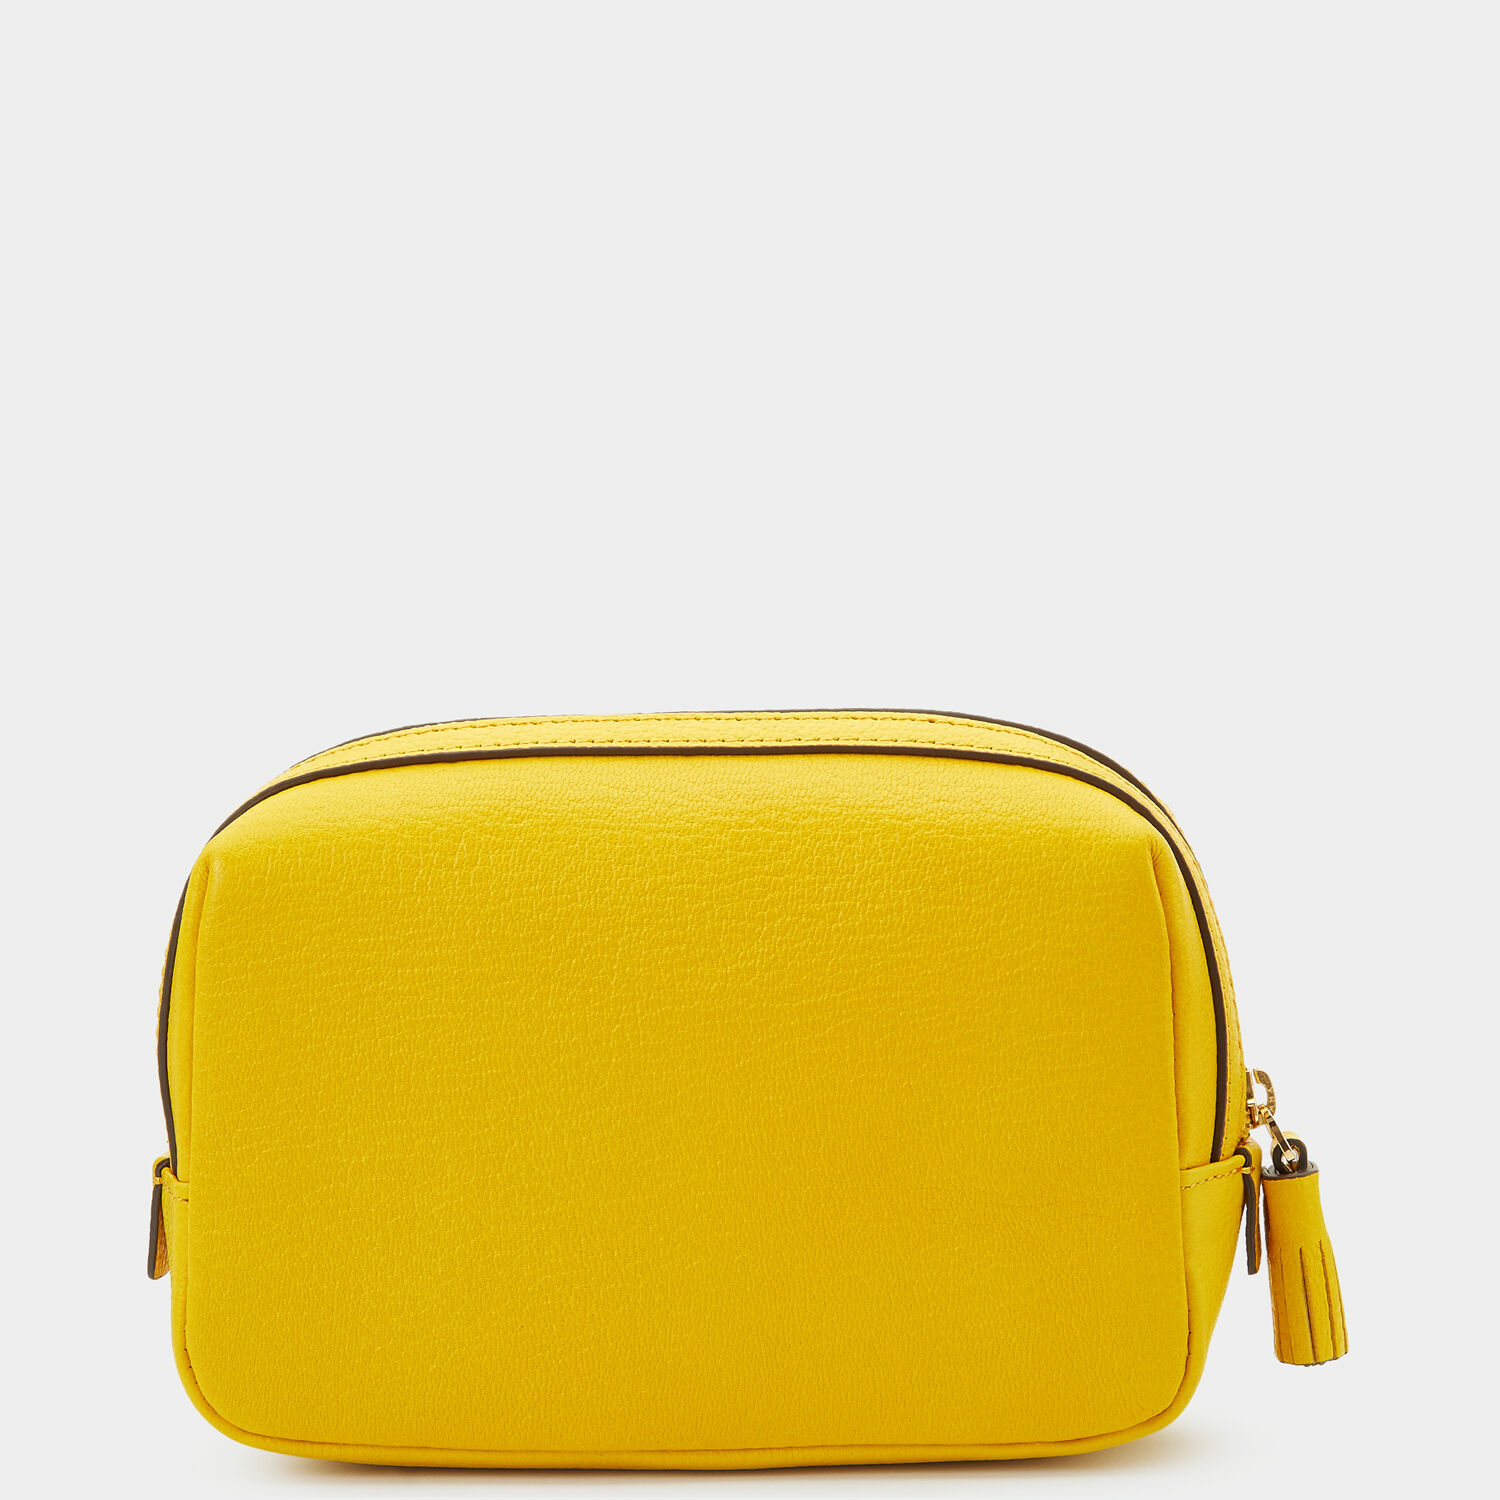 Bespoke Small Pouch by Anya Hindmarch